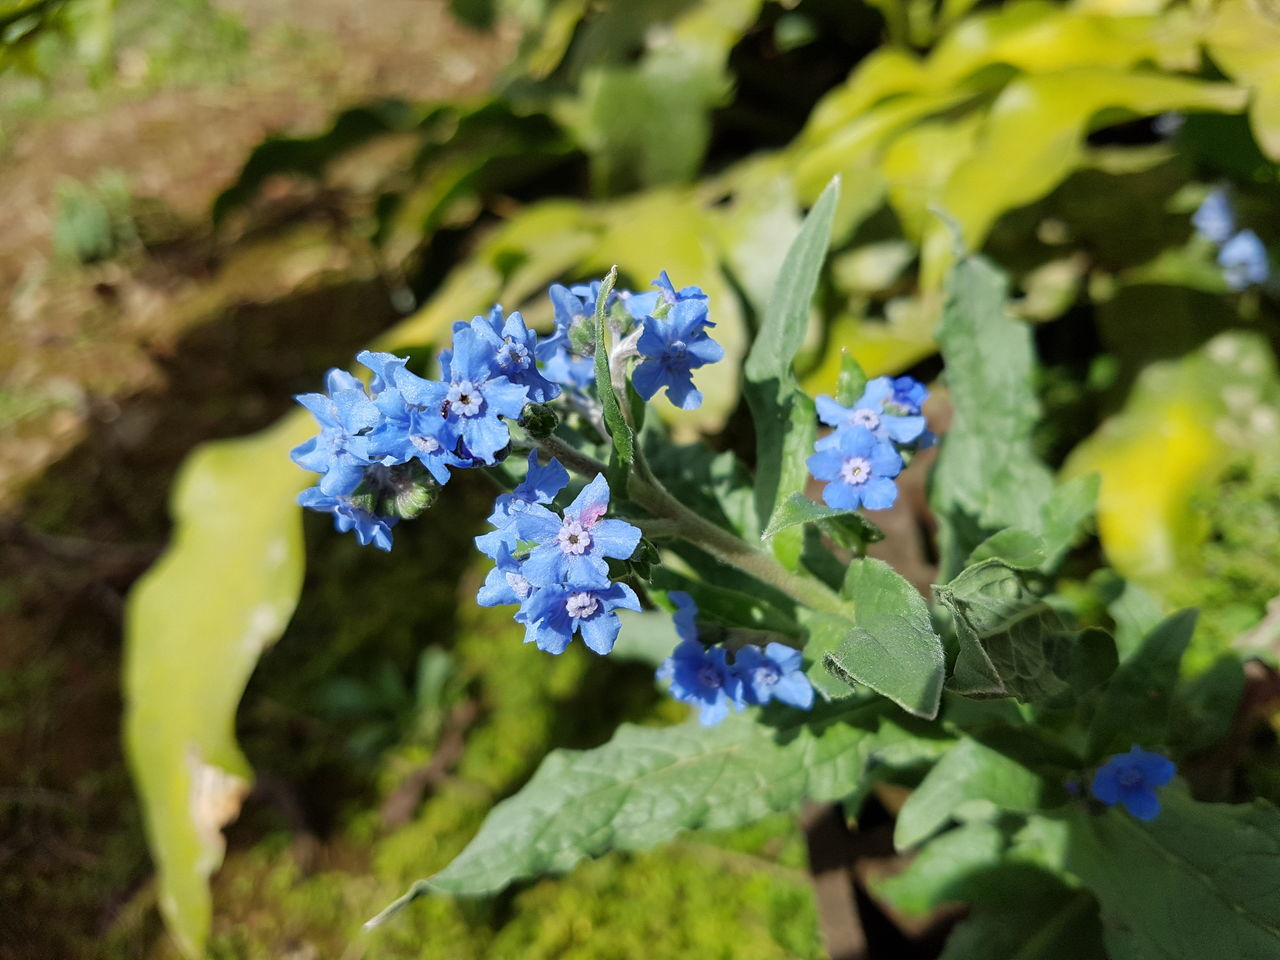 Forget me not... Taking Photos Check This Out Hello World Relaxing Enjoying Life Nature Galaxys7 EyeEm Nature Lover Colours Blue Flower Flower Photography Flowers,Plants & Garden Secret Garden Blue Flowers Barbacena Minas Gerais-Brazil Forget Me Not